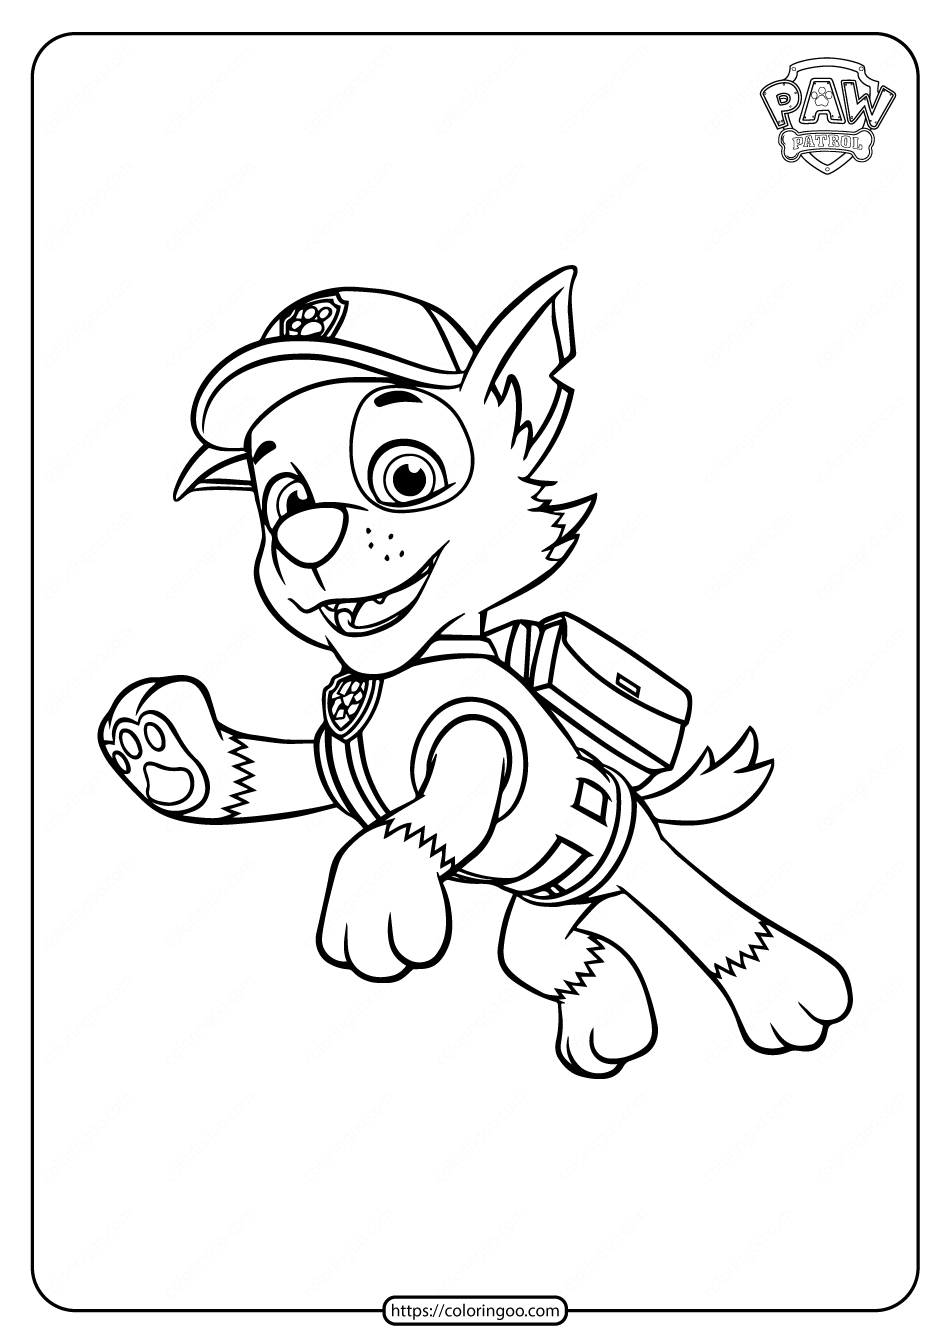 paw patrol vehicles coloring pages free printable paw patrol coloring pages at getdrawings pages paw coloring vehicles patrol